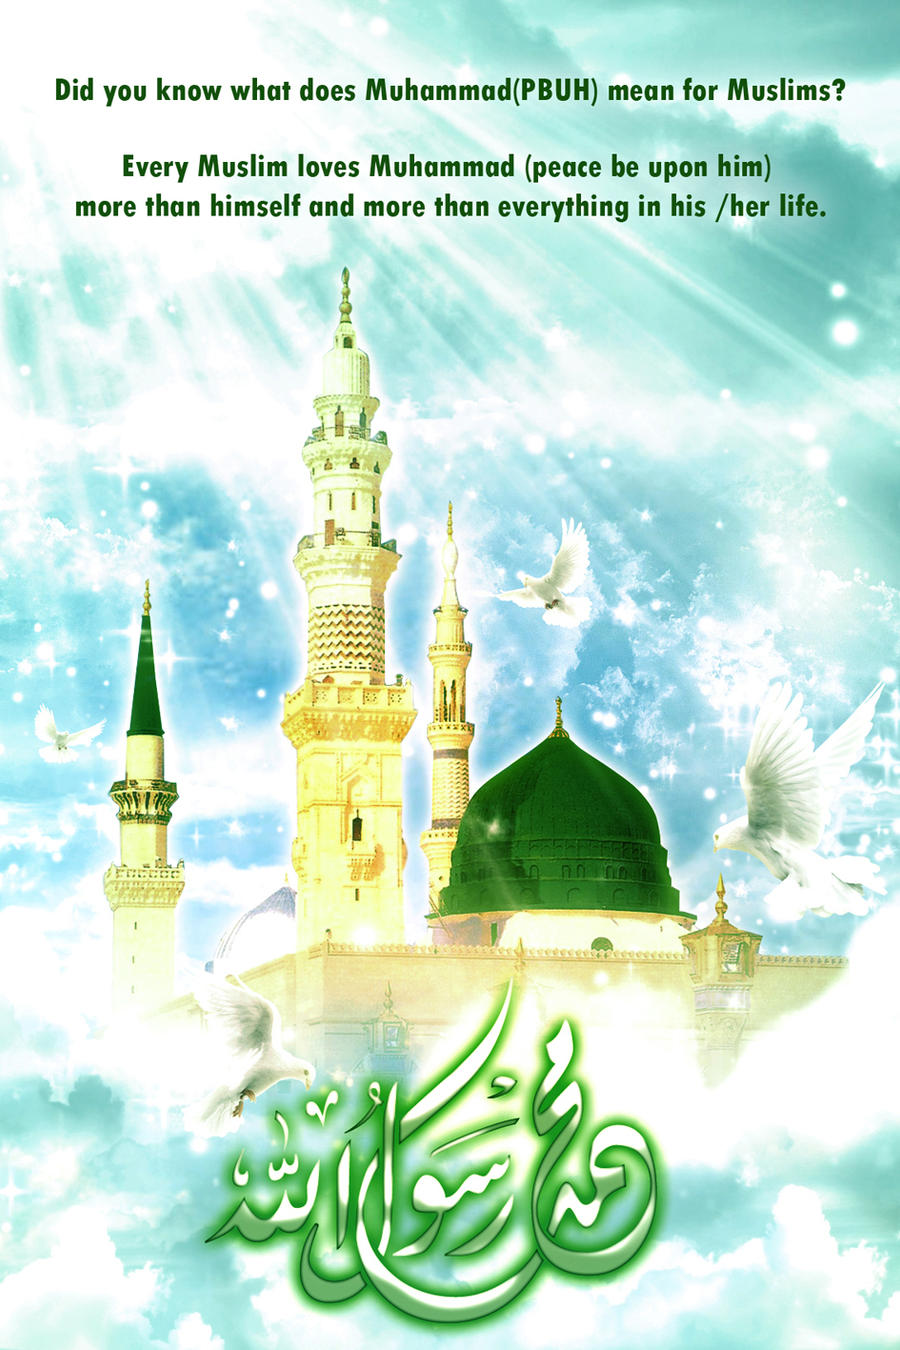 Muhammad (PUBH) Messenger Of Allah by Fatimaweb